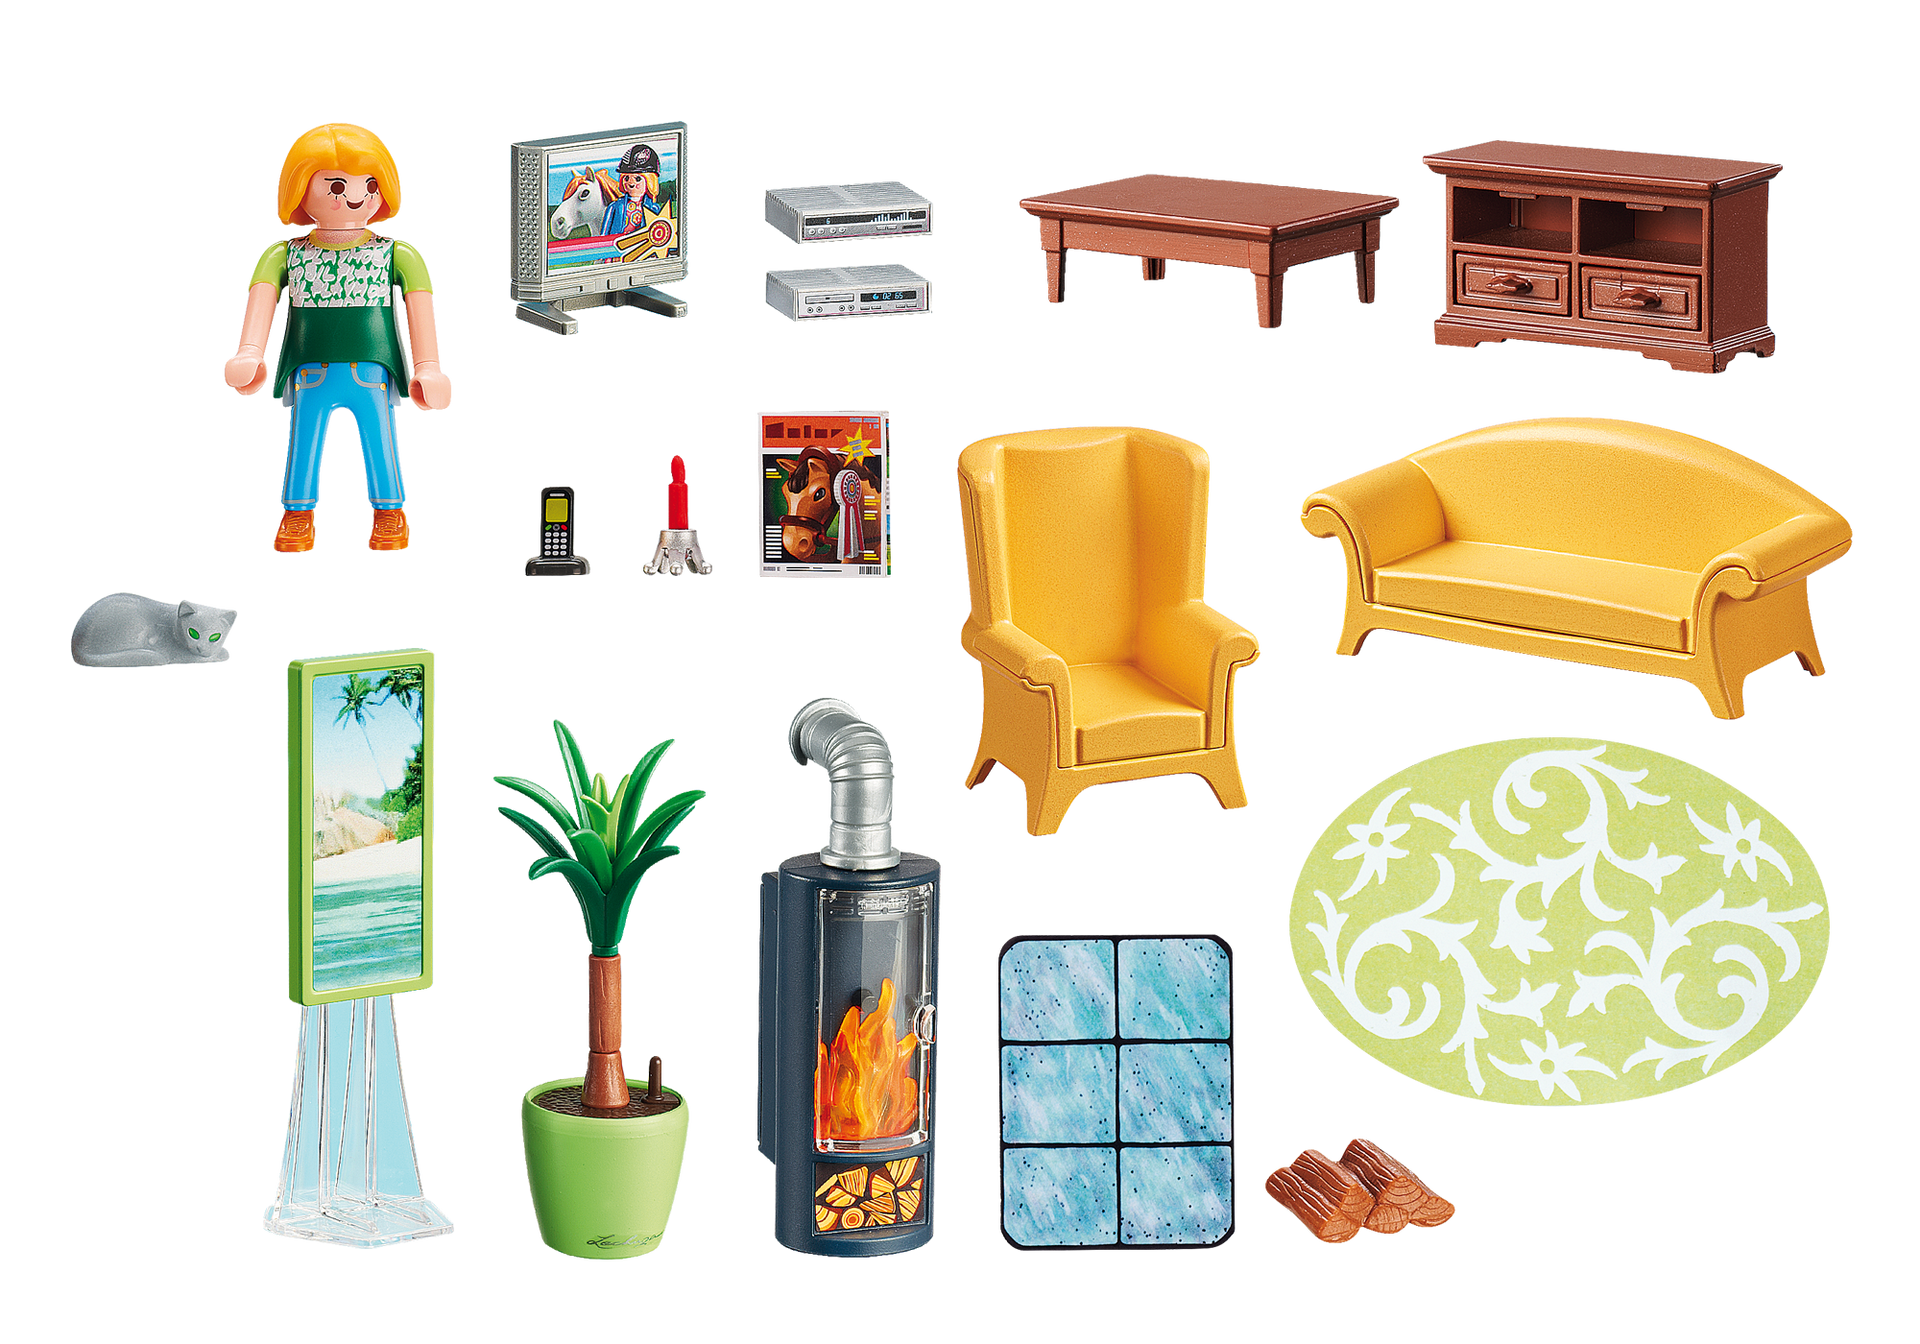 Room clipart dollhouse. Living with fireplace playmobil